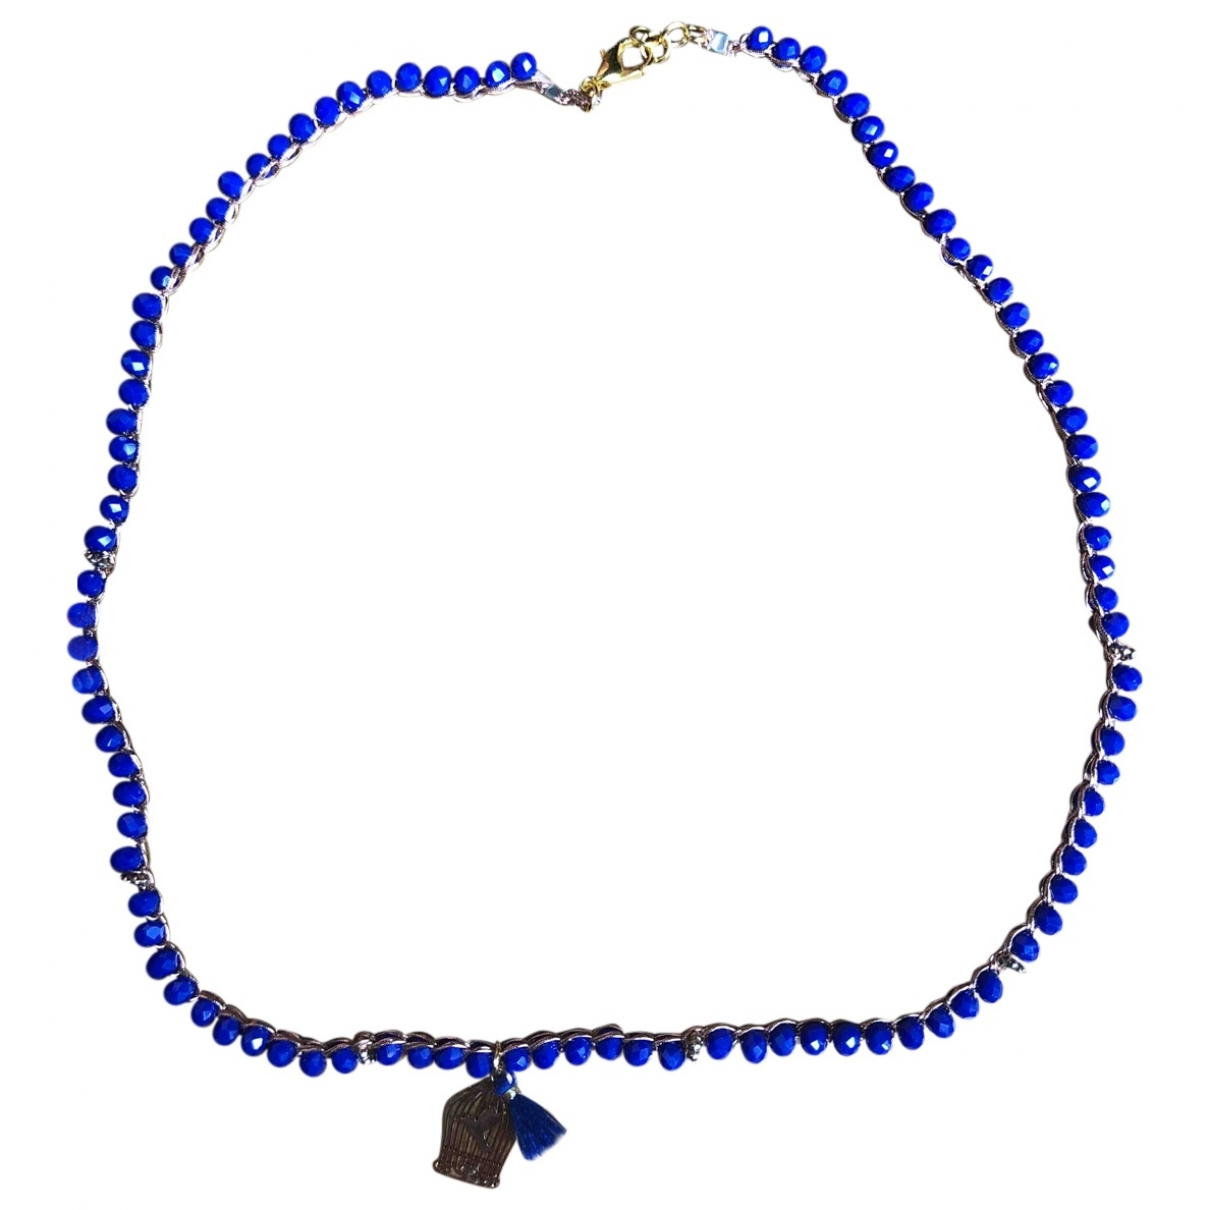 Non Signe / Unsigned \N Kette in  Blau Metall